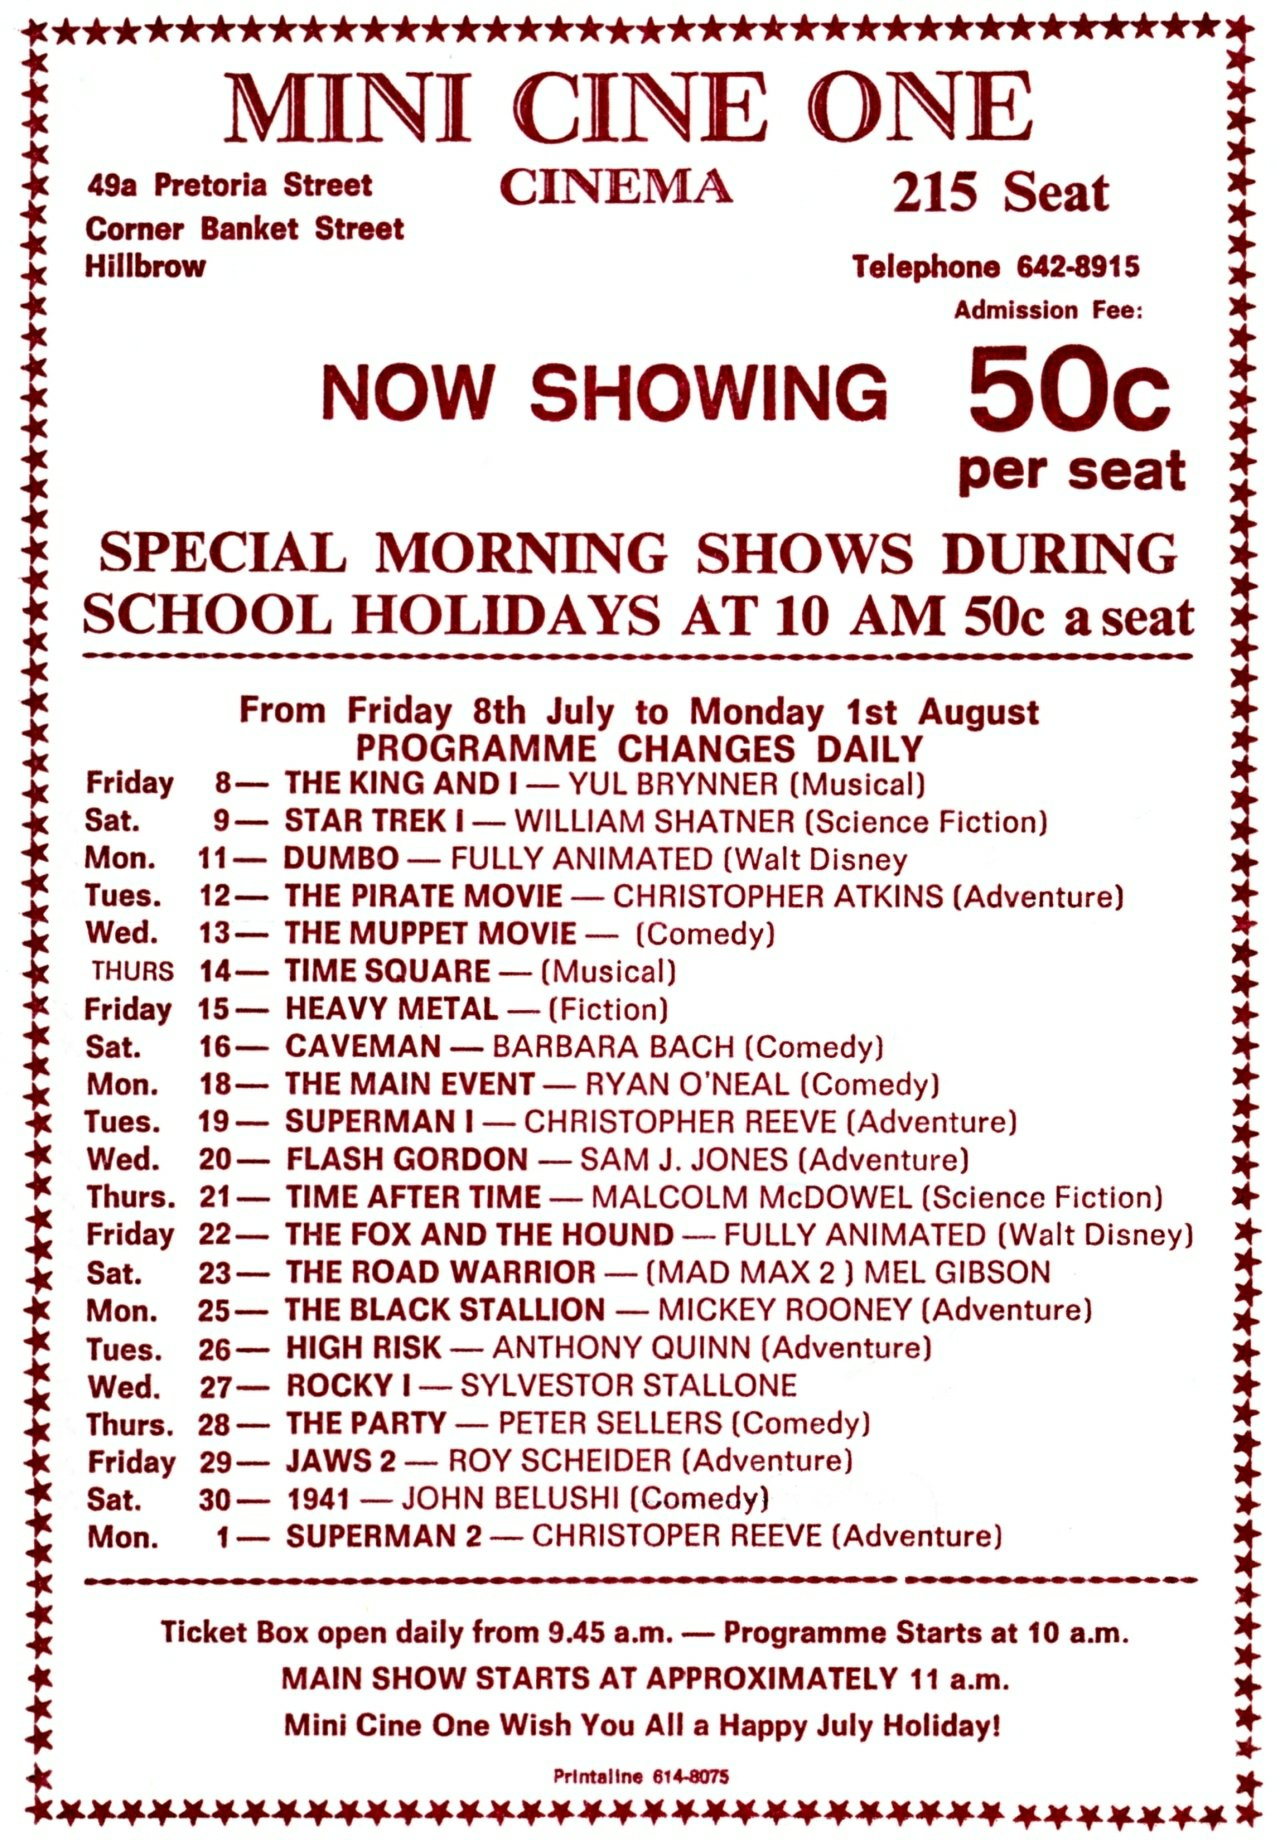 Mini Cine One special morning shows